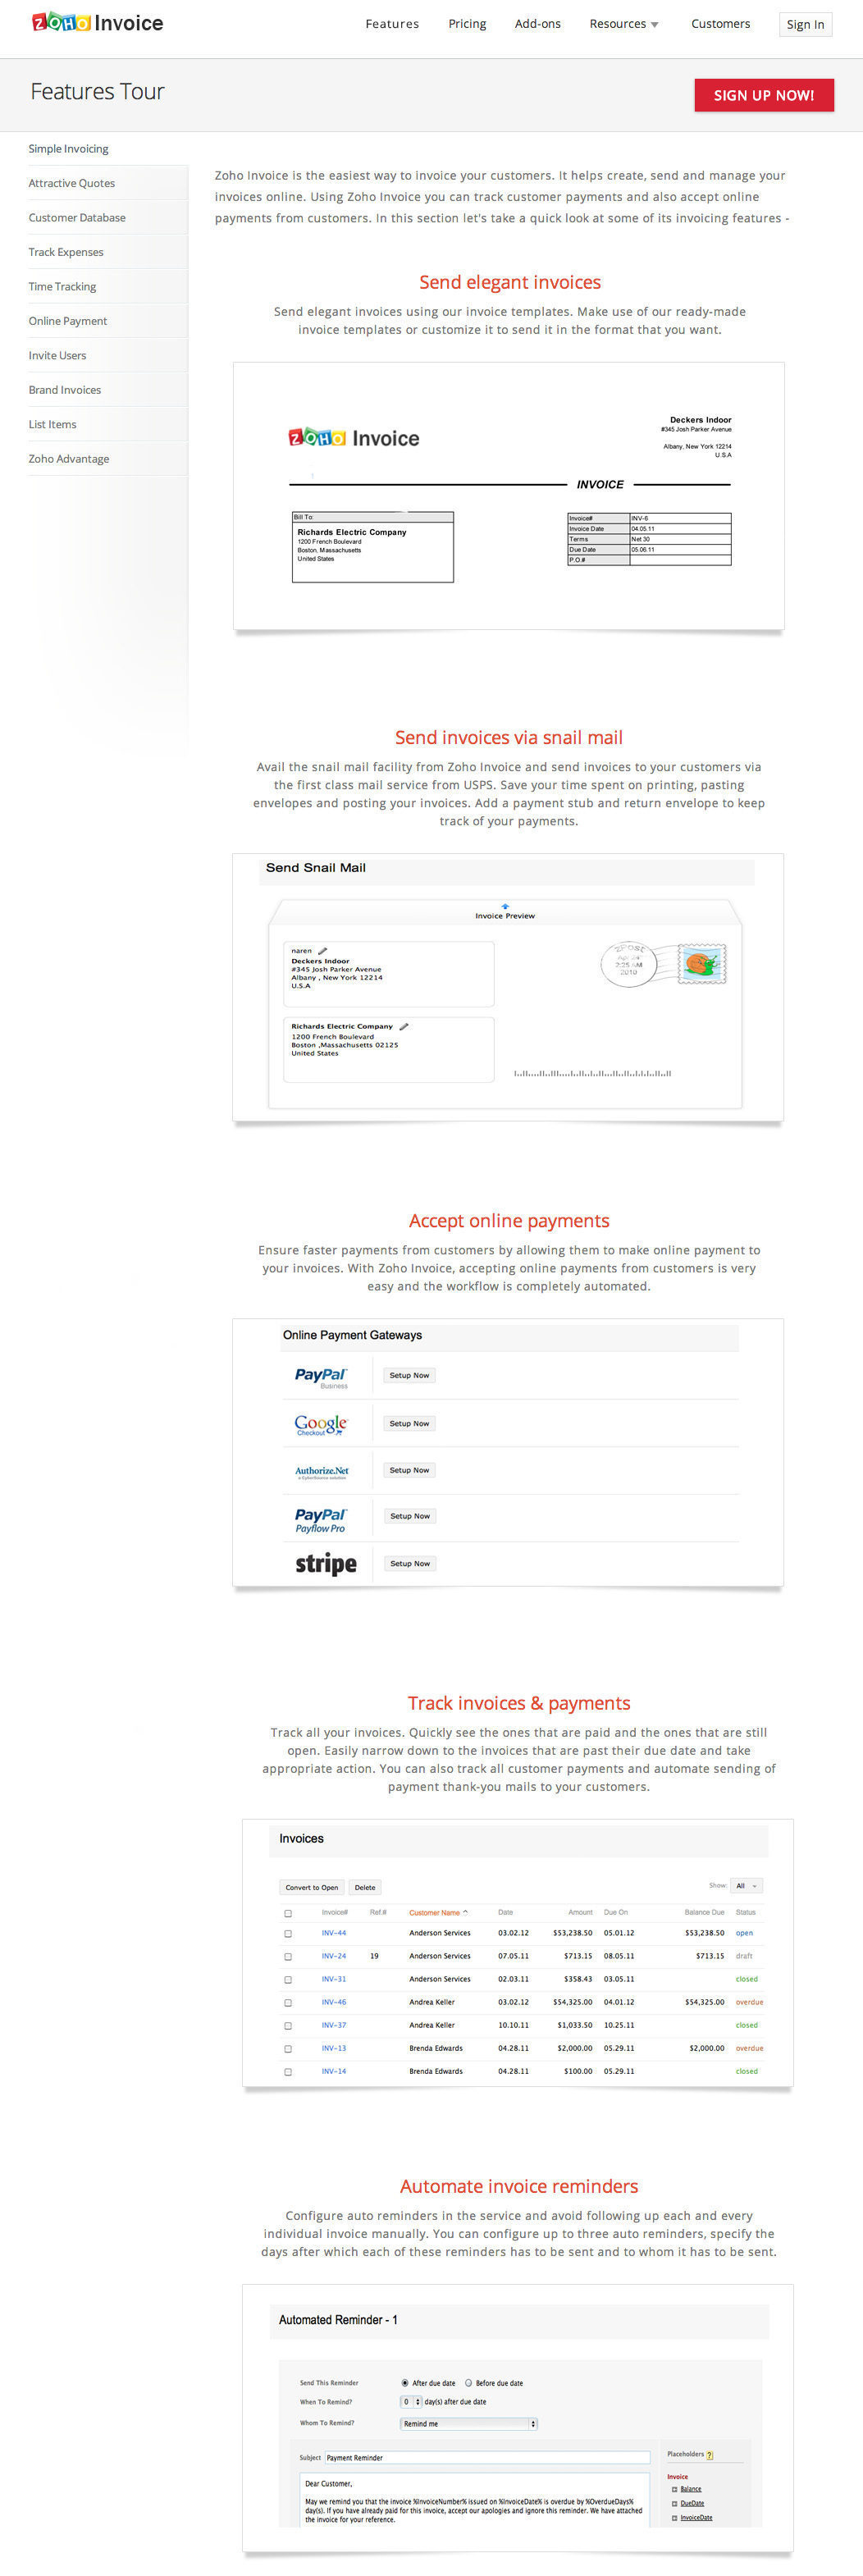 Hucareus  Gorgeous Top  Complaints And Reviews About Zoho Invoice With Outstanding Zoho Invoice Pricing Zoho Invoice  Simple Invoicing  With Beauteous Sale Invoice Format In Word Also Free Printable Blank Invoice Template In Addition Service Billing Invoice Template And Invoice Reconciliation Template As Well As Invoice  Days Net Additionally On Invoice Discount From Consumeraffairscom With Hucareus  Outstanding Top  Complaints And Reviews About Zoho Invoice With Beauteous Zoho Invoice Pricing Zoho Invoice  Simple Invoicing  And Gorgeous Sale Invoice Format In Word Also Free Printable Blank Invoice Template In Addition Service Billing Invoice Template From Consumeraffairscom